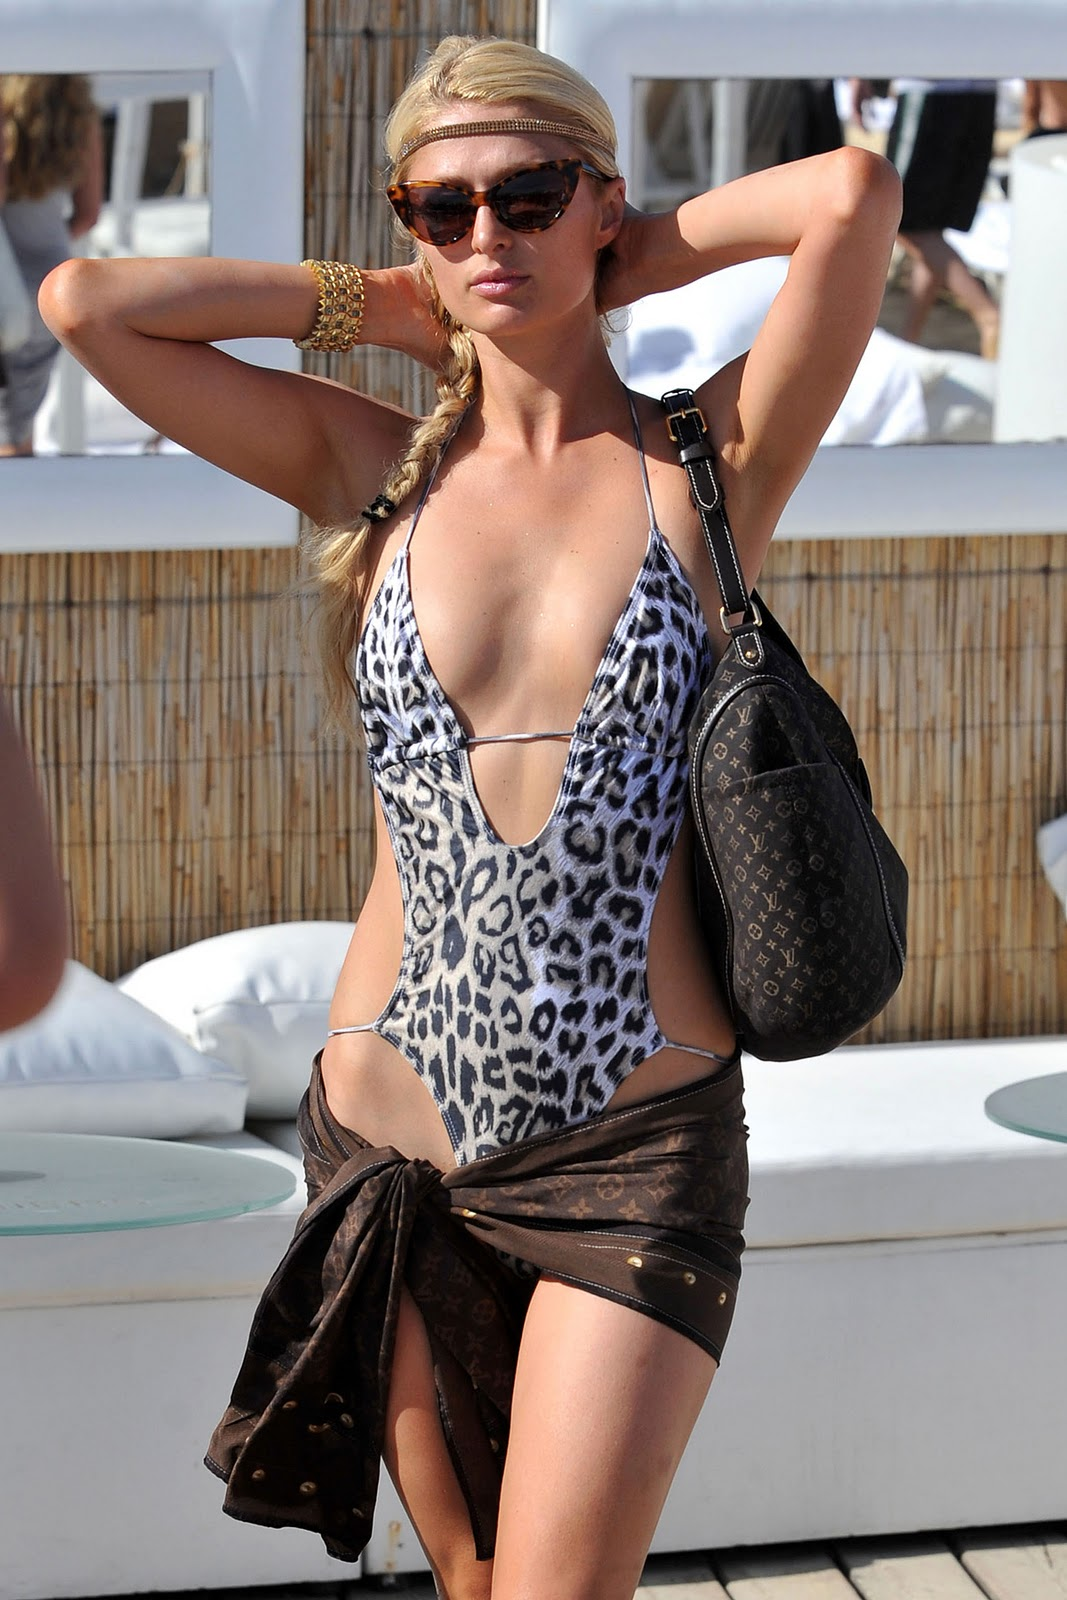 Paris Hilton Nude Pics and Videos -- - Top Nude Celebs